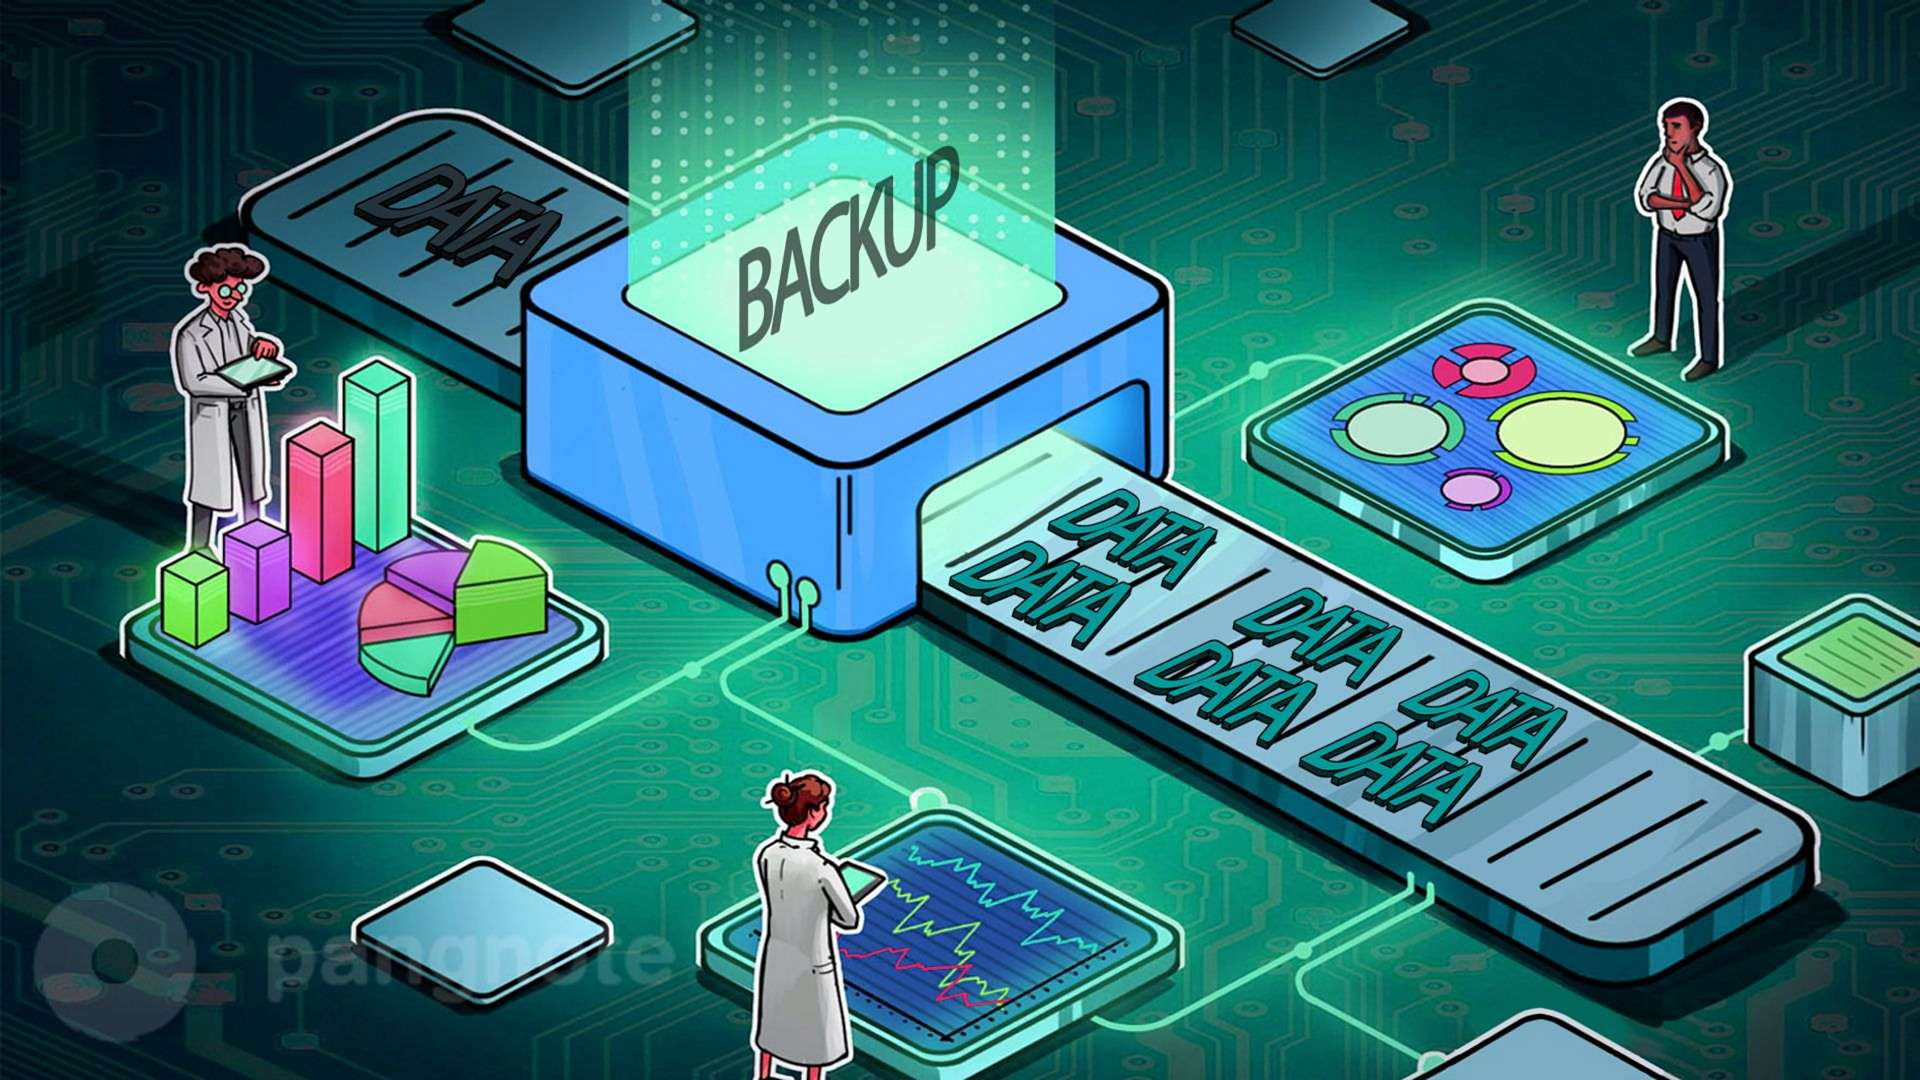 Backup as one of the most important elements in the operation of any project